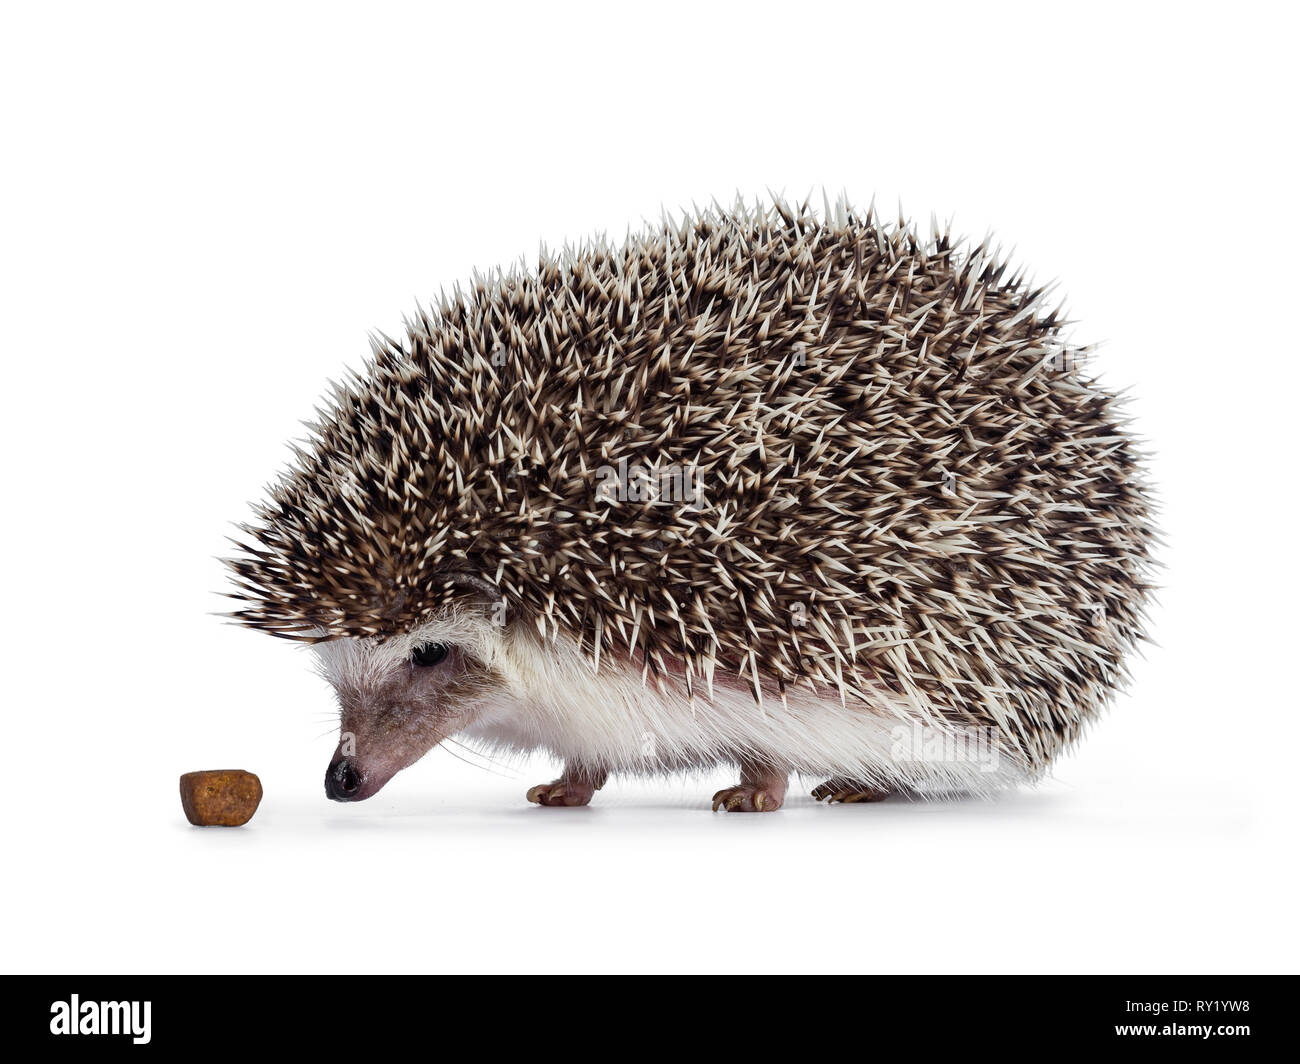 Cute spiky hedgehog walking side ways, looking and sniffing at cat kibble food. Isolated on white background. - Stock Image